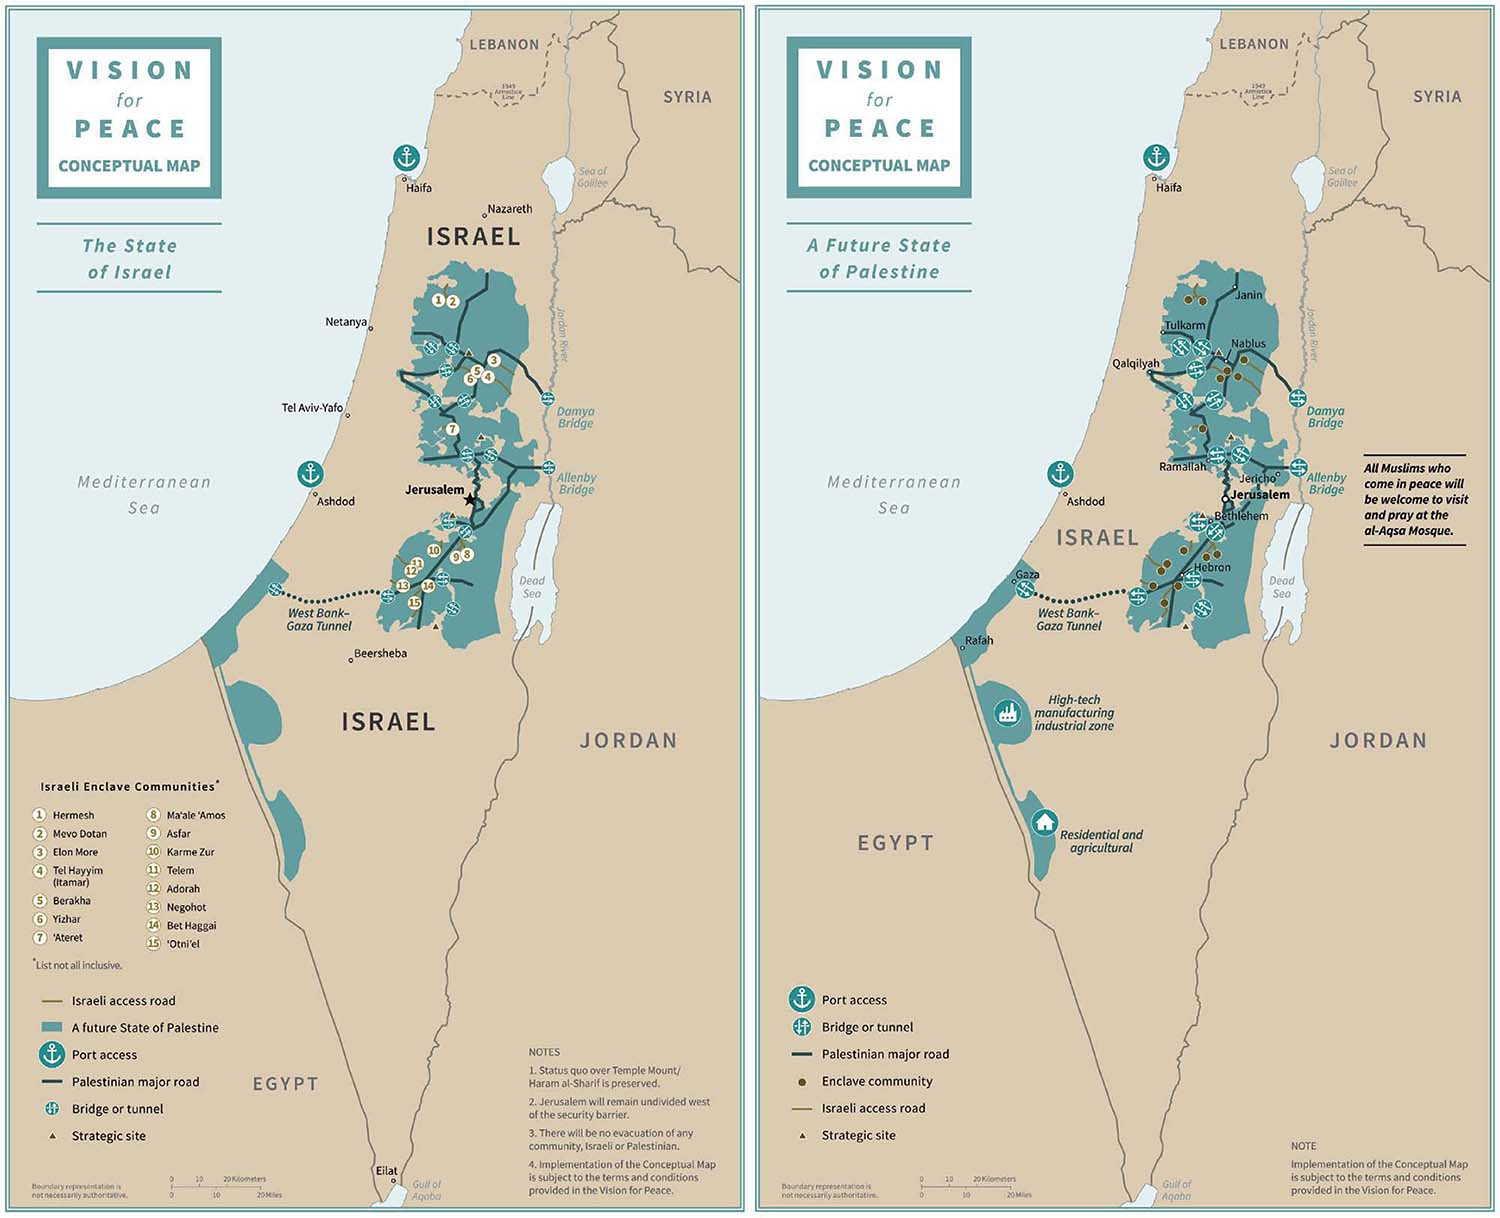 Trump's 181-page Middle East peace plan includes maps delineating the final borders of Israel and the future Palestinian state. The first map shows what Israel would look like after it annexed most Jewish settlements in the West Bank and a large swatch of eastern territory known as the Jordan Valley. In the second map, the Palestinian state is made up of discrete territorial blocs connected by highways and tunnels. The state would include two areas of land south of the Gaza Strip that currently belong to Israel.